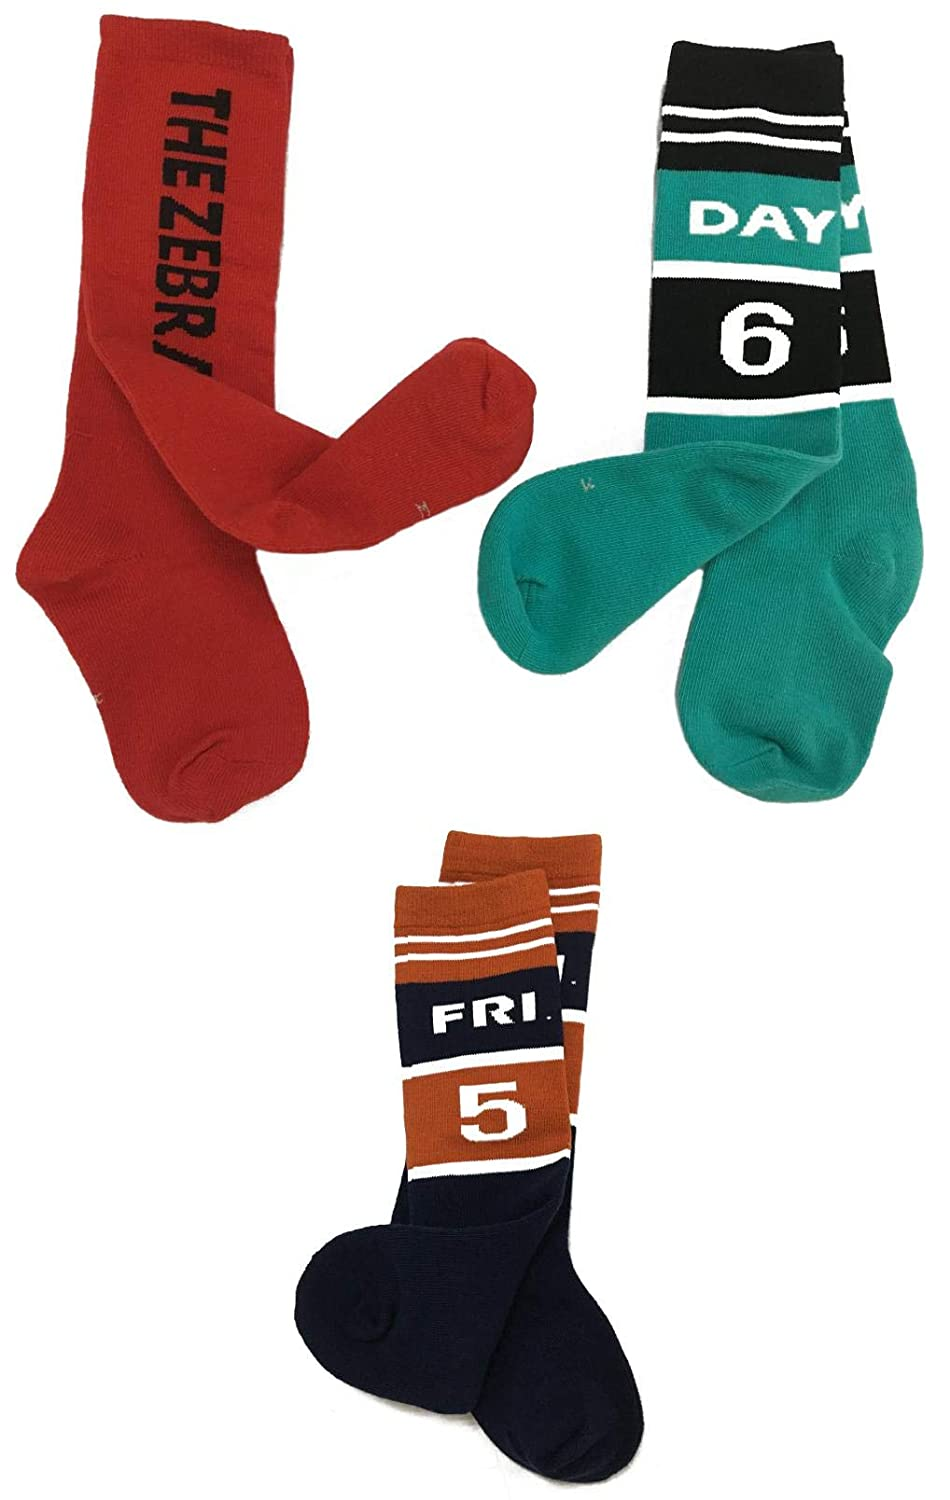 Wodison 6 Pairs Girls Boys Cotton Middle Tube Socks Letter Print Pattern Cool Sock And Day Number Crew sport Socks